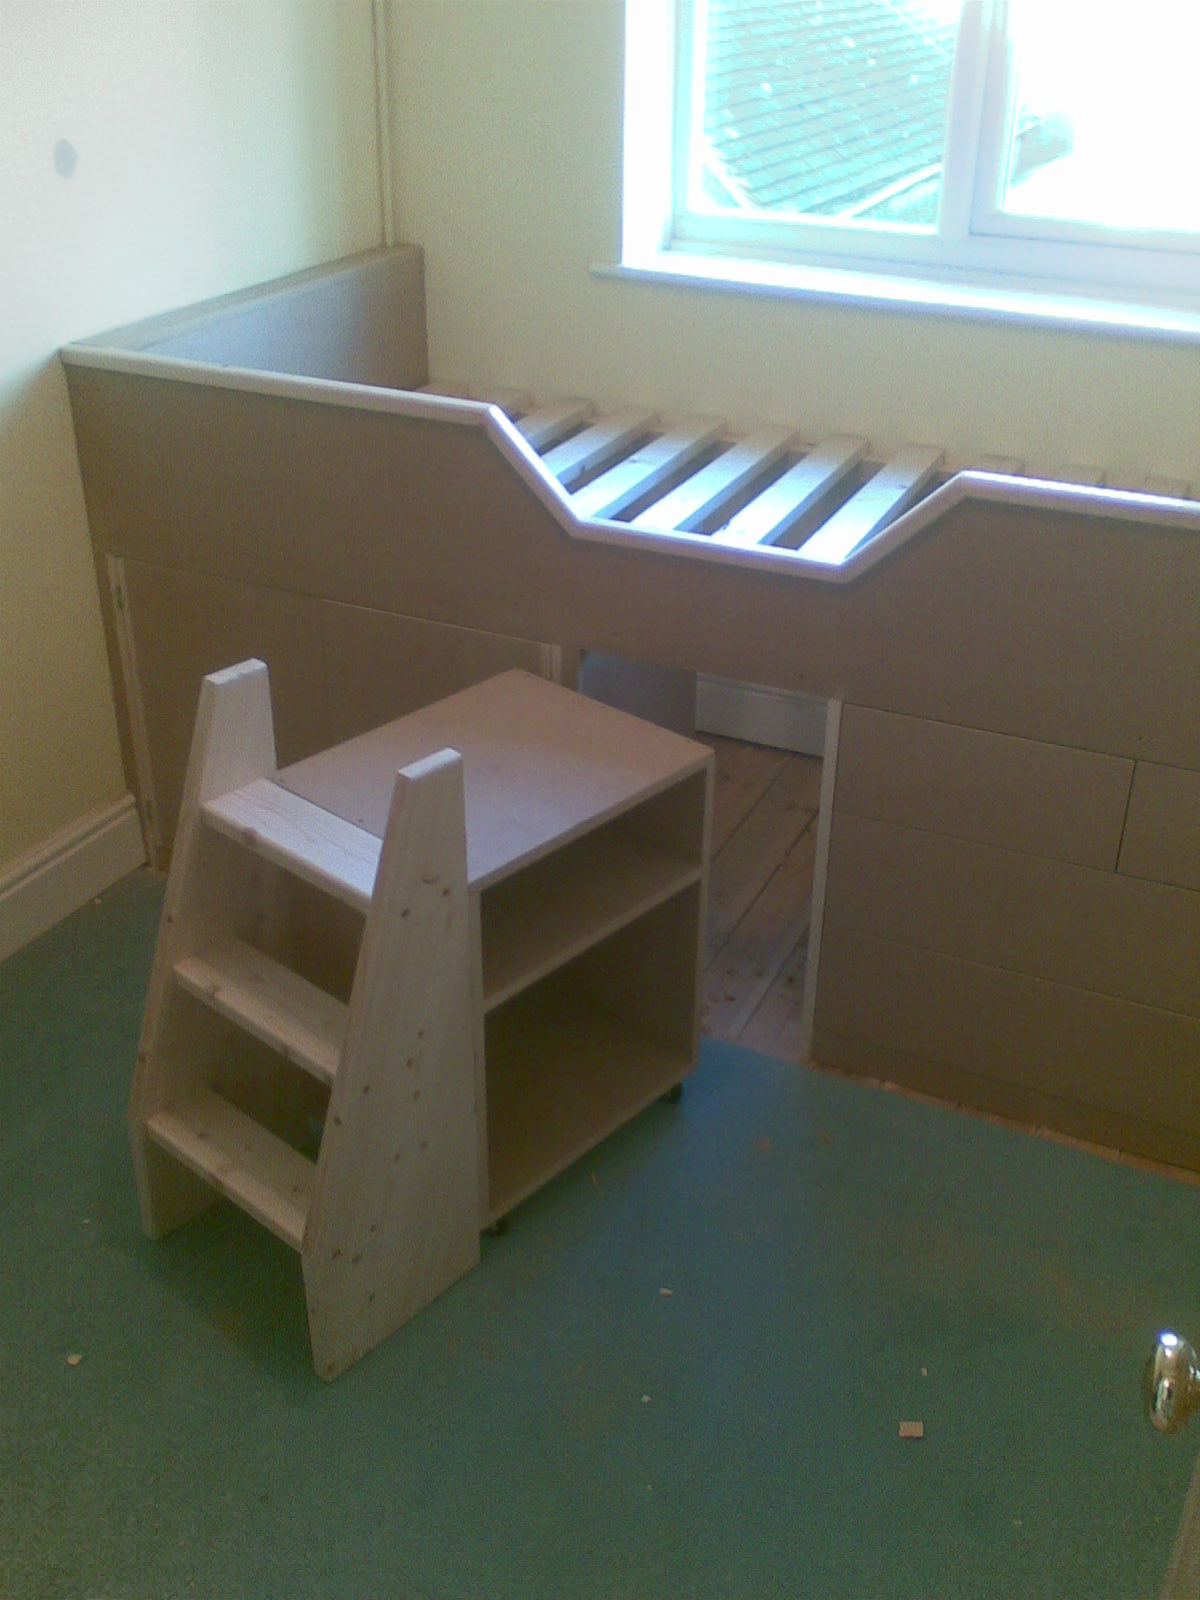 Small Beds For Box Rooms Built In Childrens Cabin Bed With Drawers Guildford